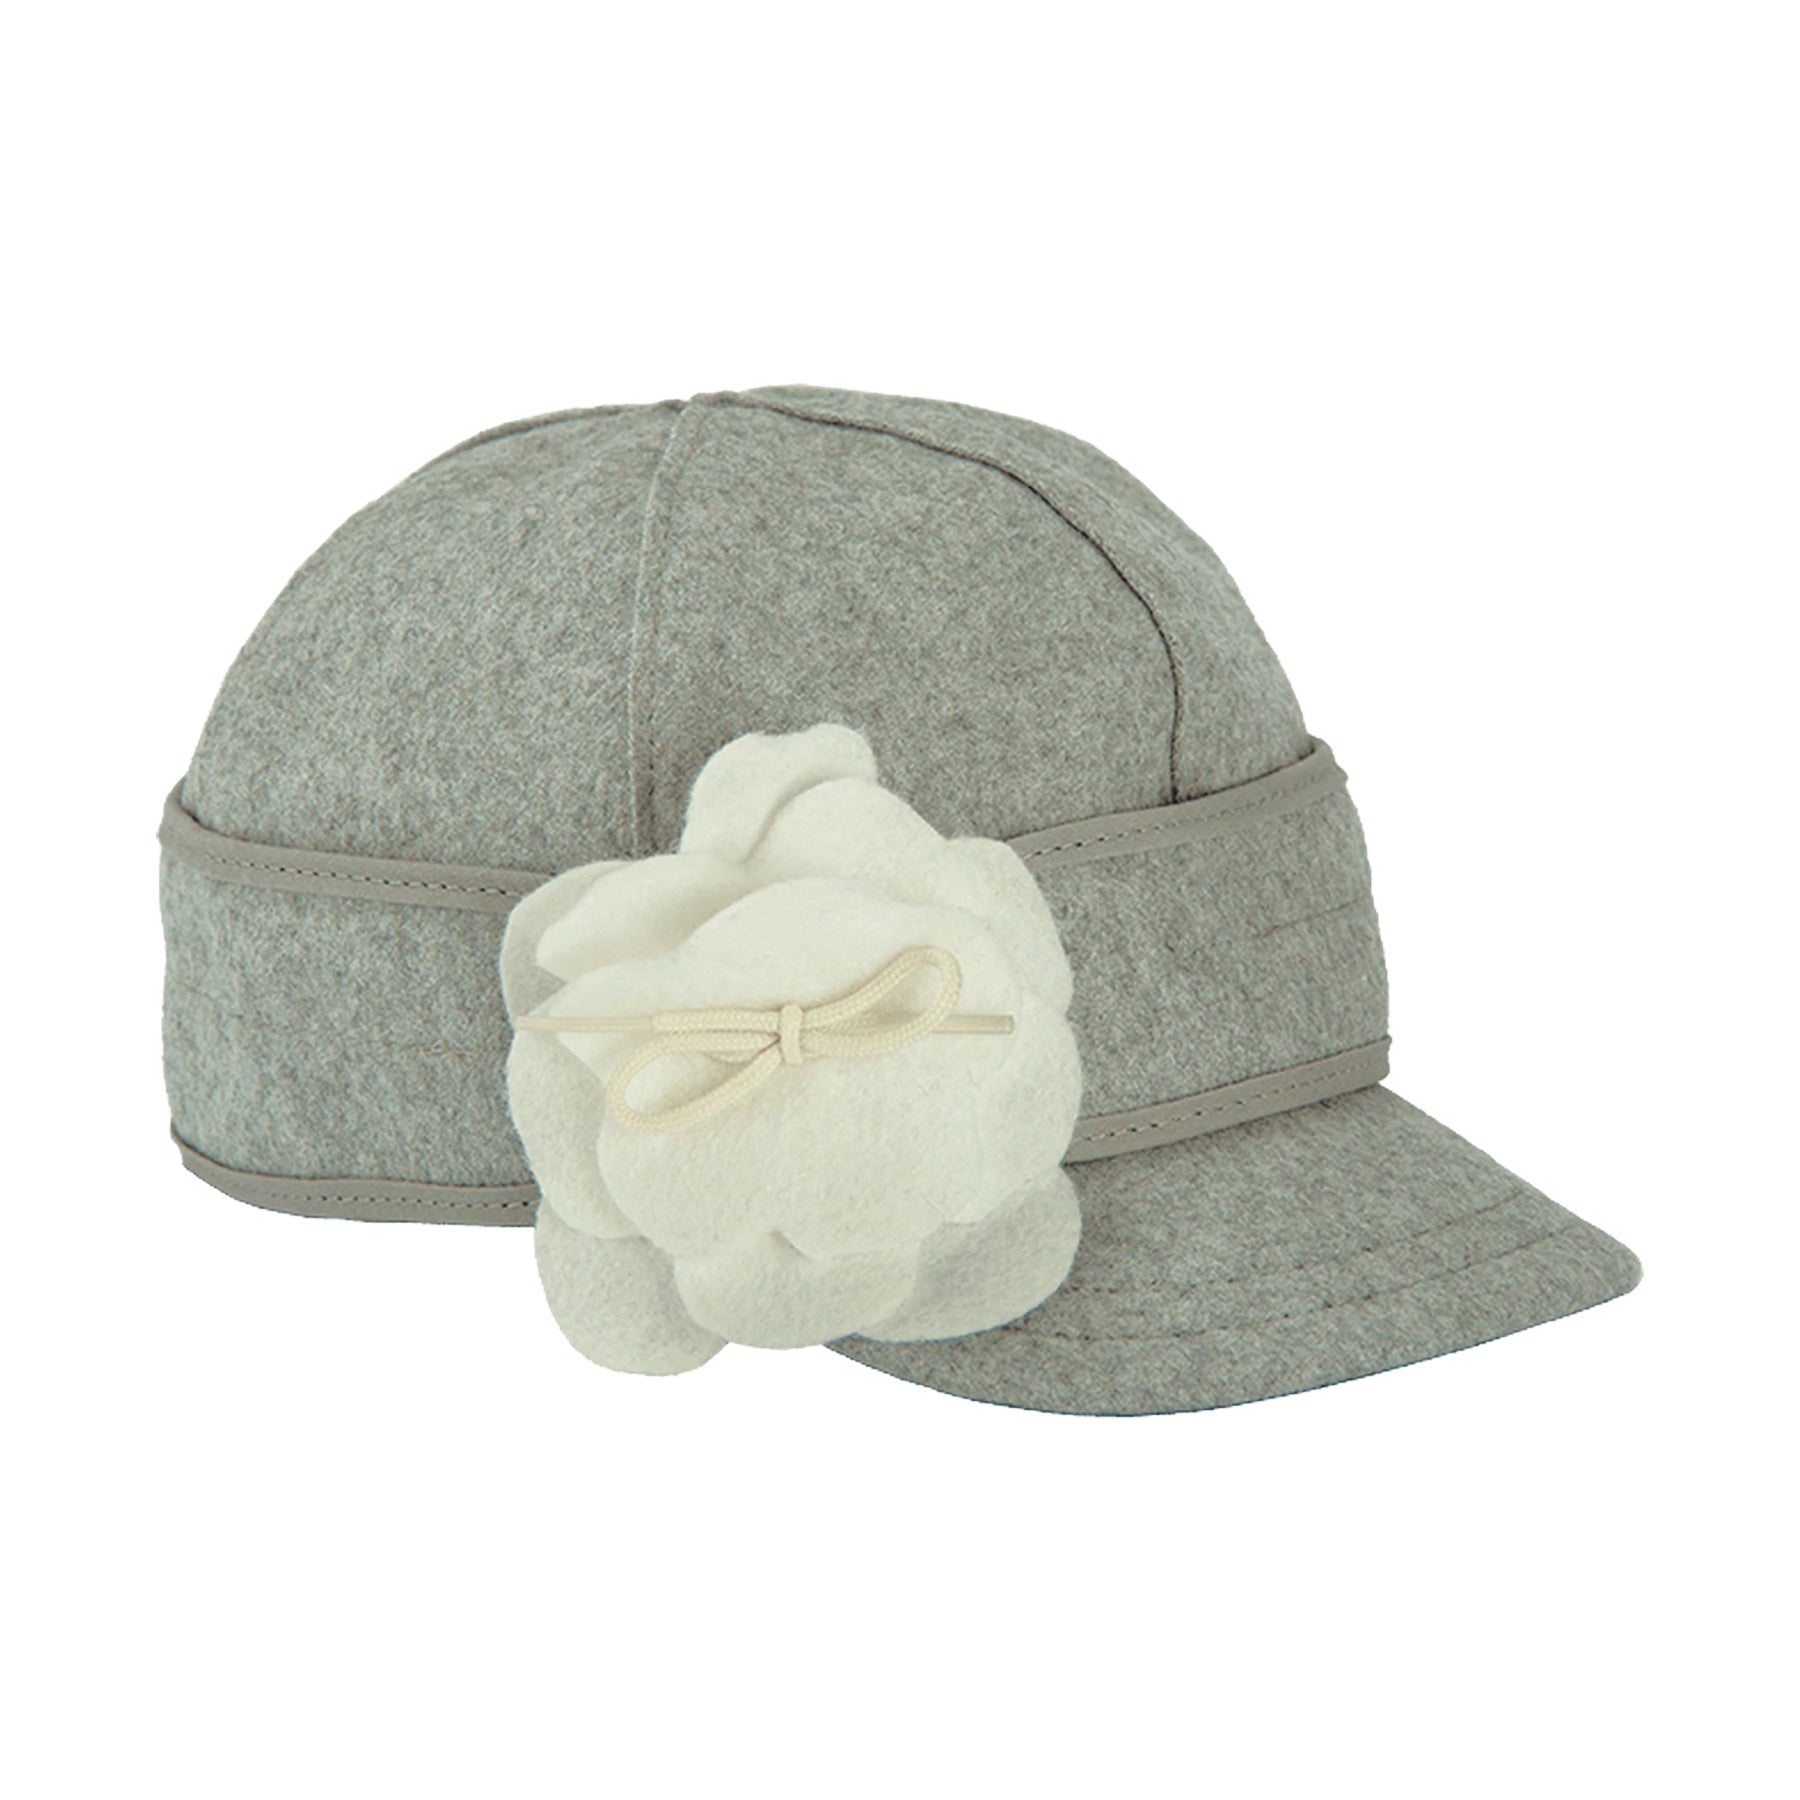 Stormy Kromer Petal Pusher Cap - Cloud